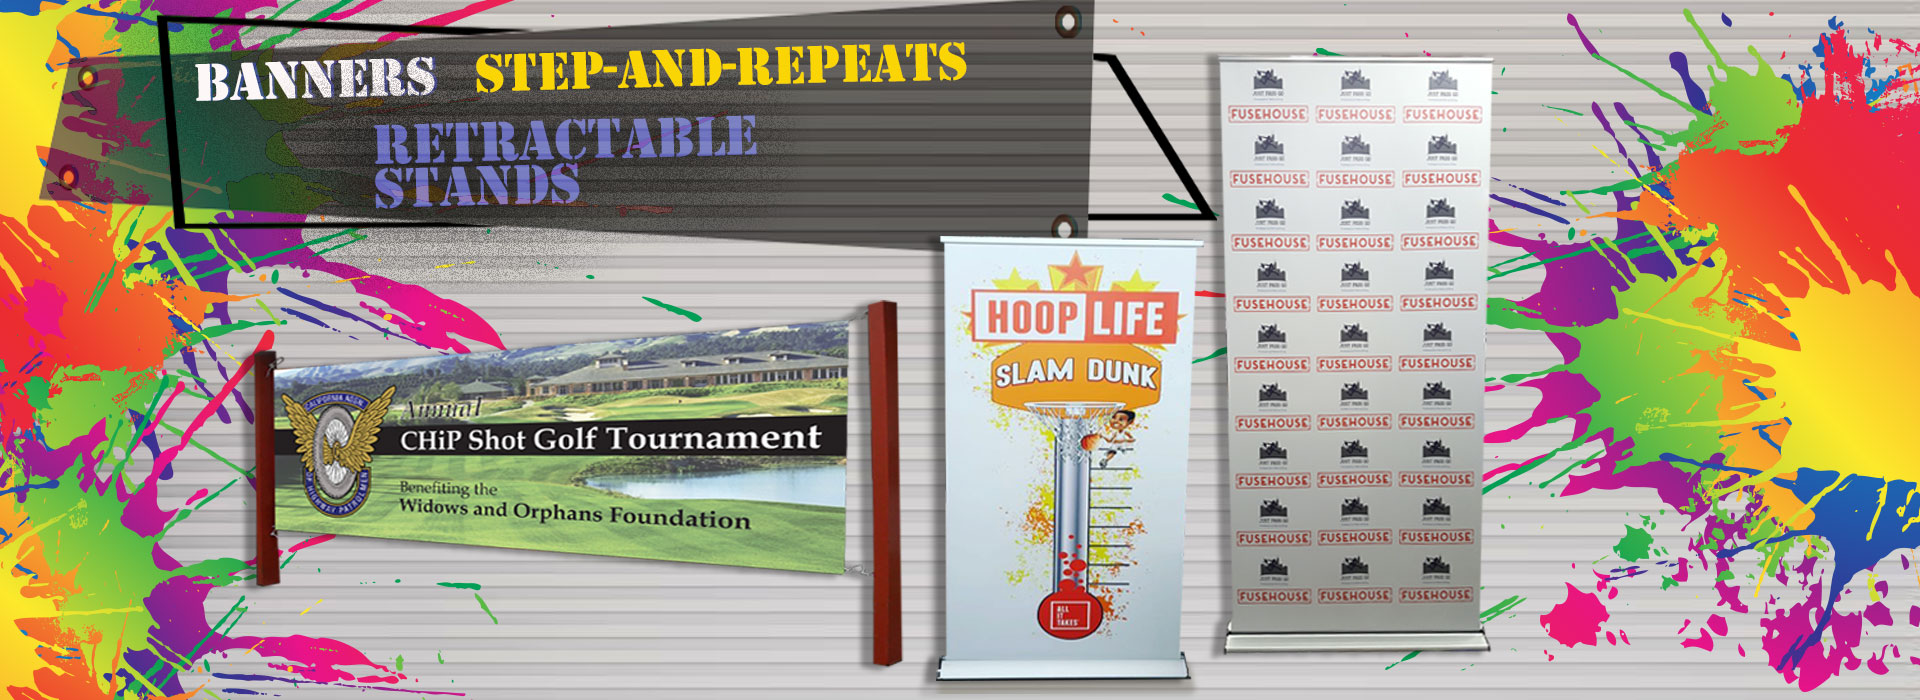 Banners, Step-and-Repeat, Retractable Banners